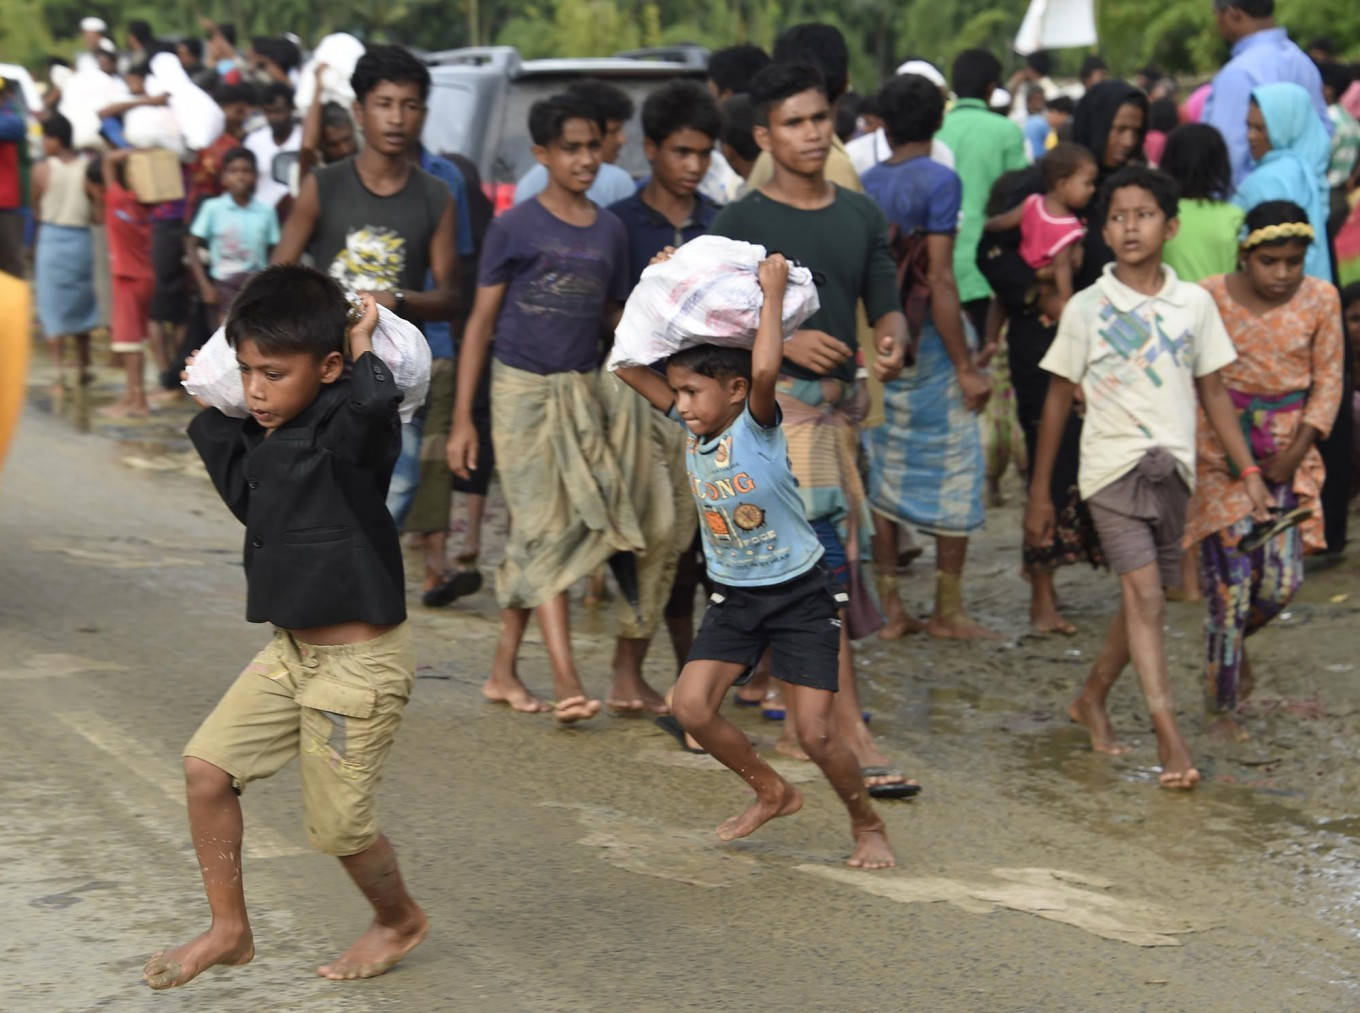 """Rohingya Muslim refugee children run after a distribution of supplies at Balukhali refugee camp near the Bangladehsi district of Ukhia on September 19, 2017. Aung San Suu Kyi said September 19 she does not fear global scrutiny over the Rohingya crisis, pledging to hold rights violators to account but refusing to blame the military for violence that has driven some 421,000 of the Muslim minority out of her country. In an address timed to pre-empt likely censure of Myanmar at the UN General Assembly in New York -- delivered entirely in English and aimed squarely at an international audience -- she called for patience and understanding of the unfurling crisis in her """"fragile democracy"""". AFP/ Dominique Faget"""